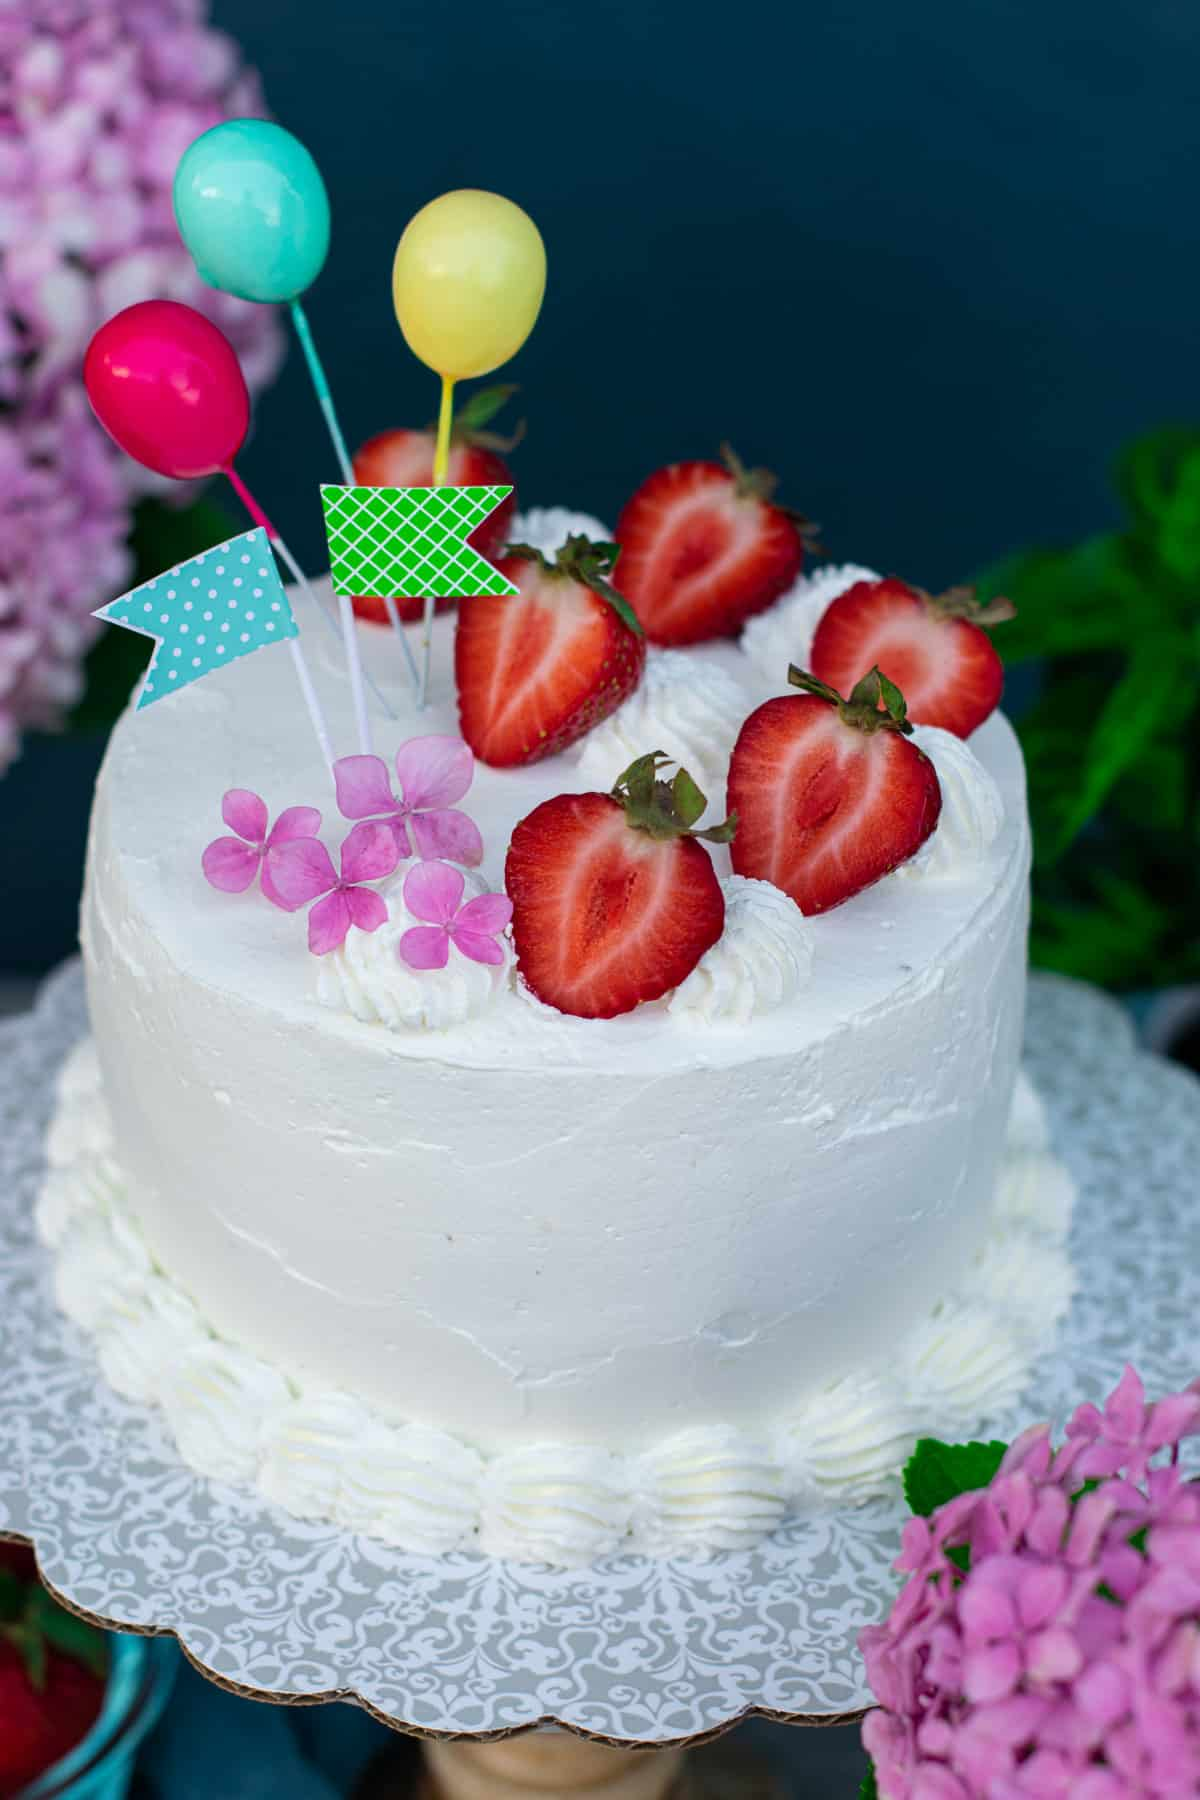 Strawberries and cream cake with pink flowers and balloons as decoration